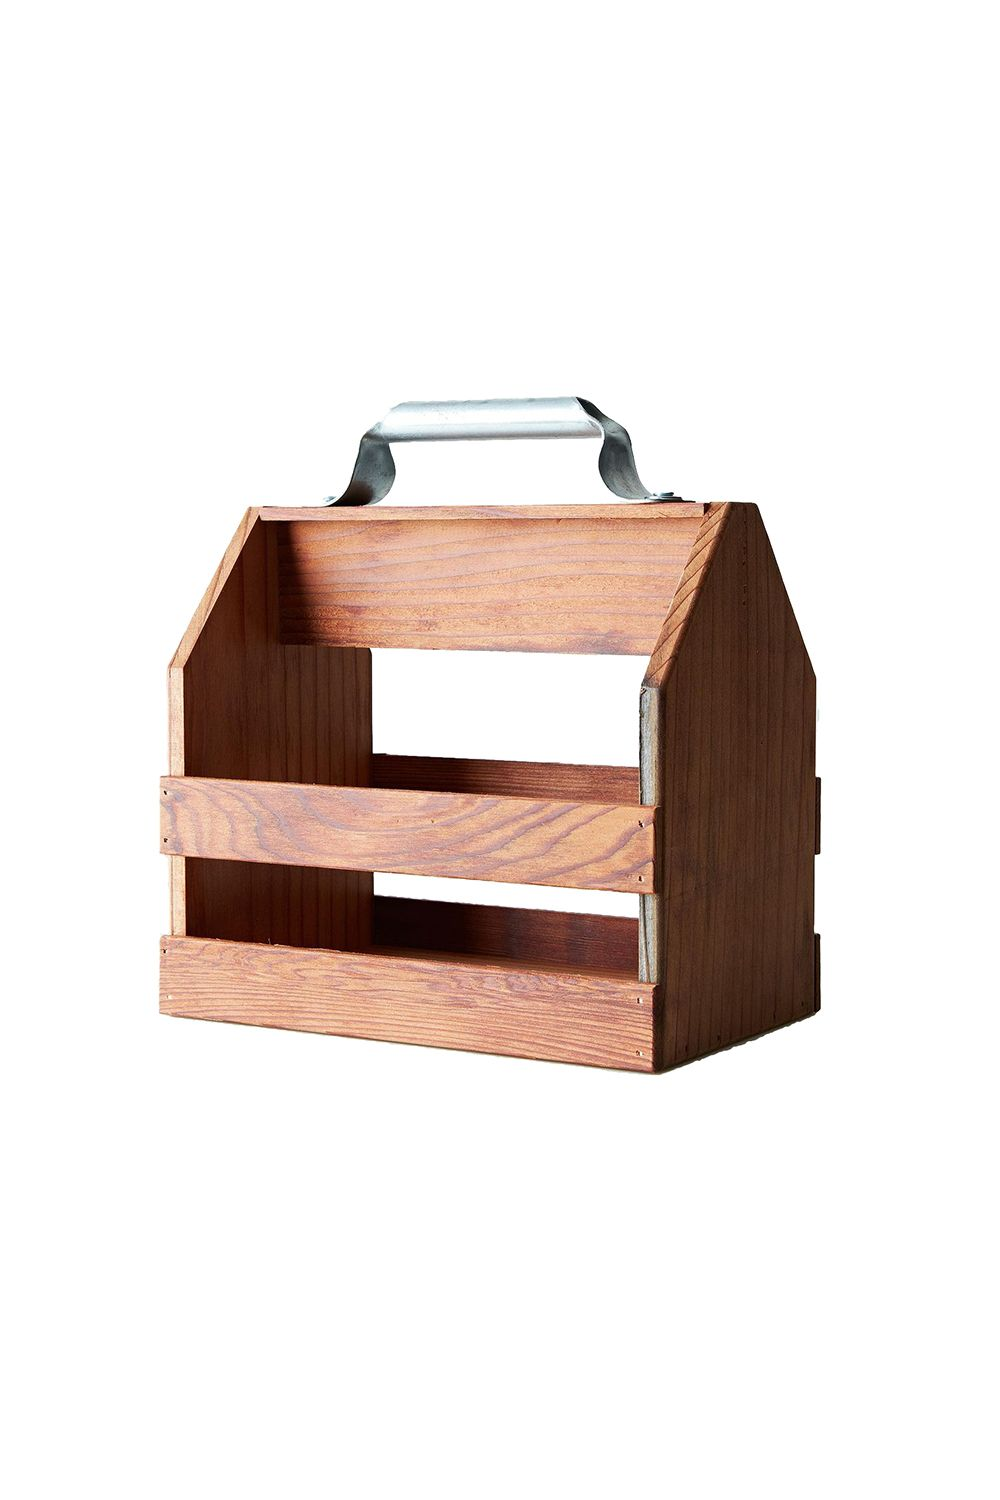 """<p>A classy six-pack crate&nbsp&#x3B;for tailgates and camping trips that's sturdier than those cardboard boxes.&nbsp&#x3B;</p><p><strong data-redactor-tag=""""strong"""" data-verified=""""redactor"""">Wood Six Pack Holder, $44&#x3B; <a href=""""https://food52.com/shop/products/1003-wood-six-pack-holder"""" target=""""_blank"""" data-tracking-id=""""recirc-text-link"""">food52.com</a>.</strong></p>"""